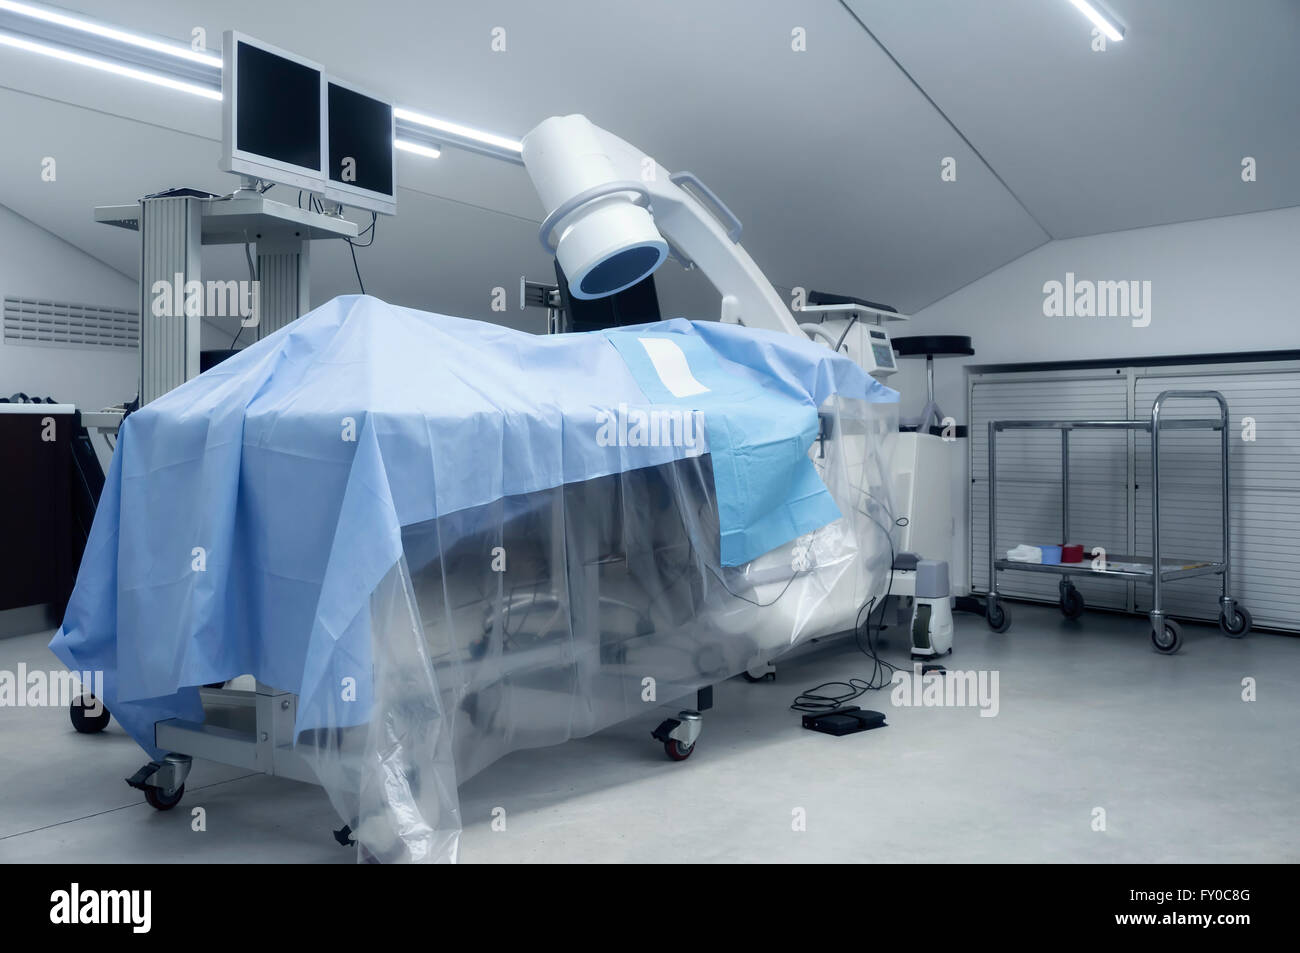 diagnostic equipment in operating room - Stock Image